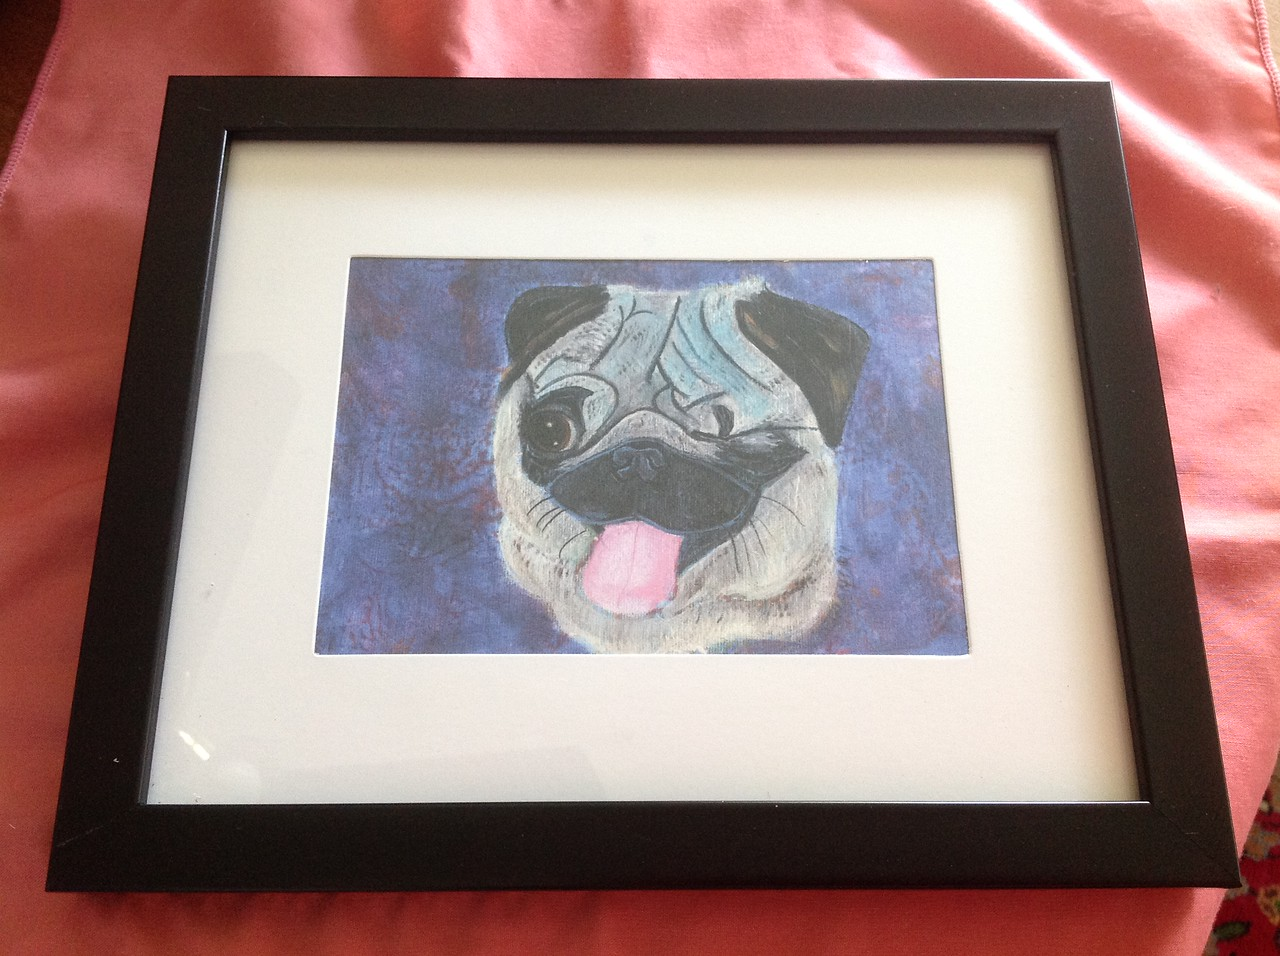 Framed  Print of a painting of a 2013 GMPR pug  by Elizabeth Landry.<br /> <br /> Winner pays shipping<br /> <br /> Starting bid $15